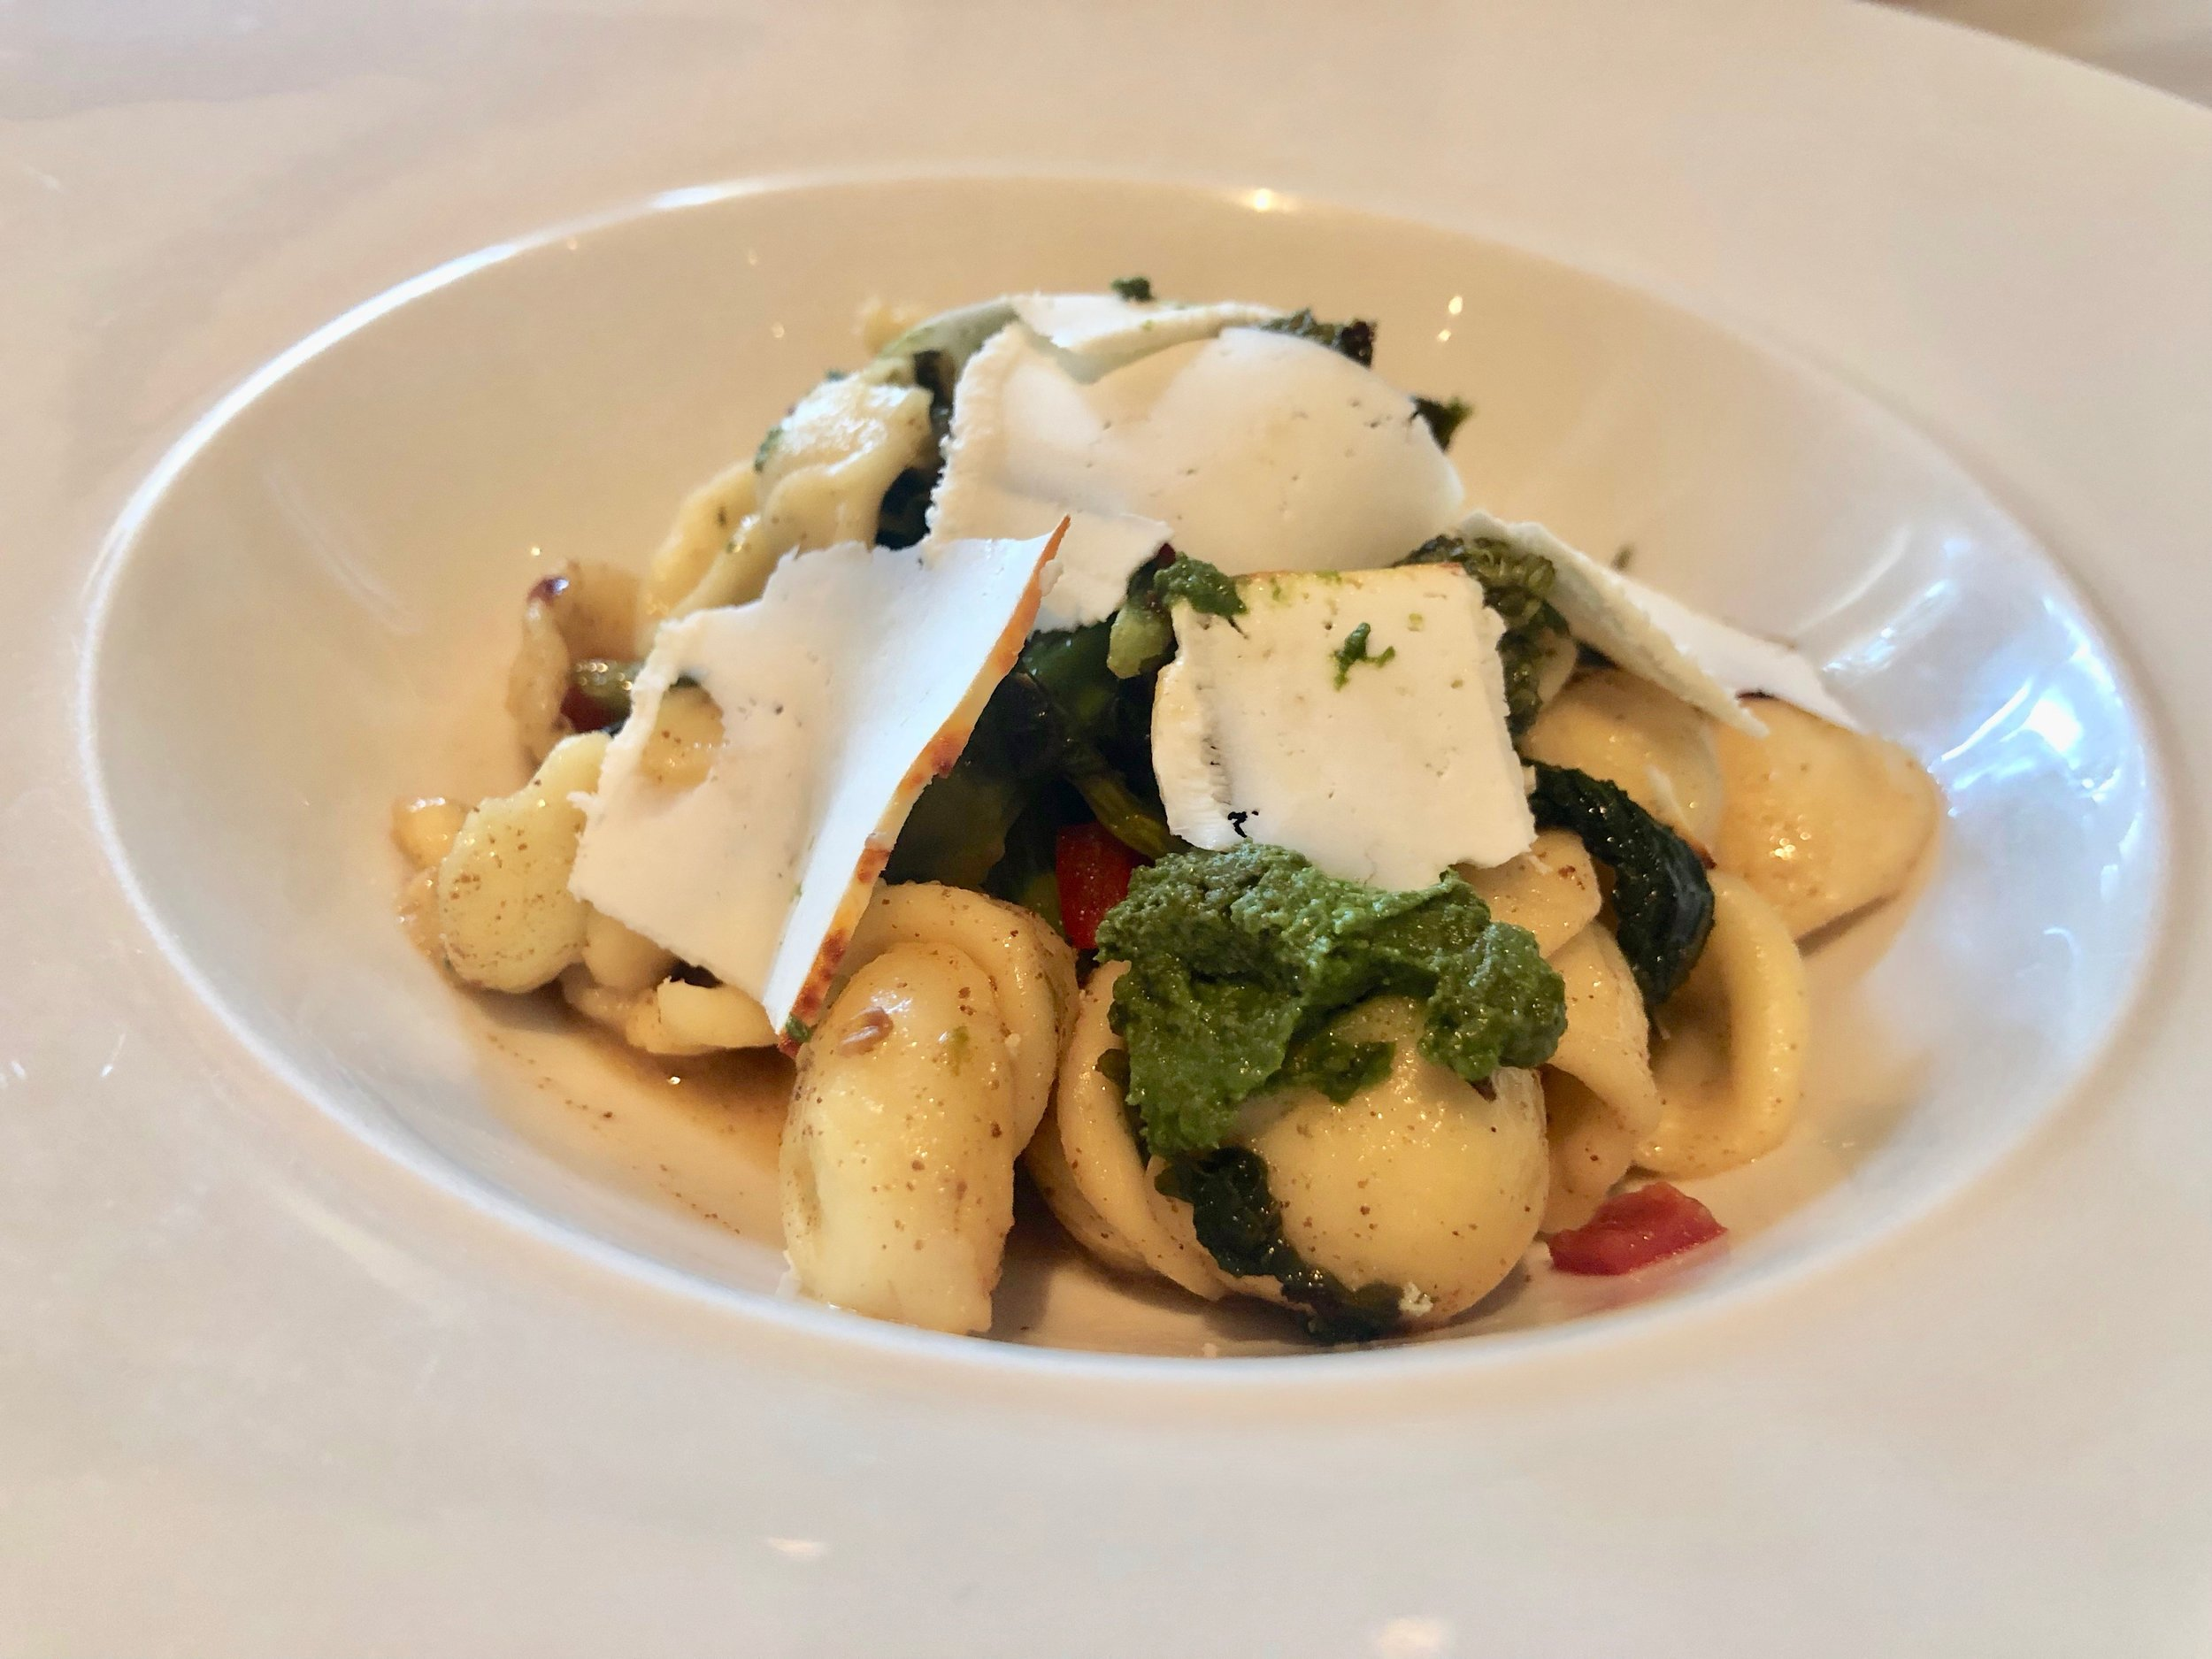 Ravello – Orecchiette. Ear-shaped semolina pasta with ricotta salata, broccili rabe and roasted peppers. Perfectly perfect, but not when you can have the chicken saltimbocca or oil-pached snapper instead.